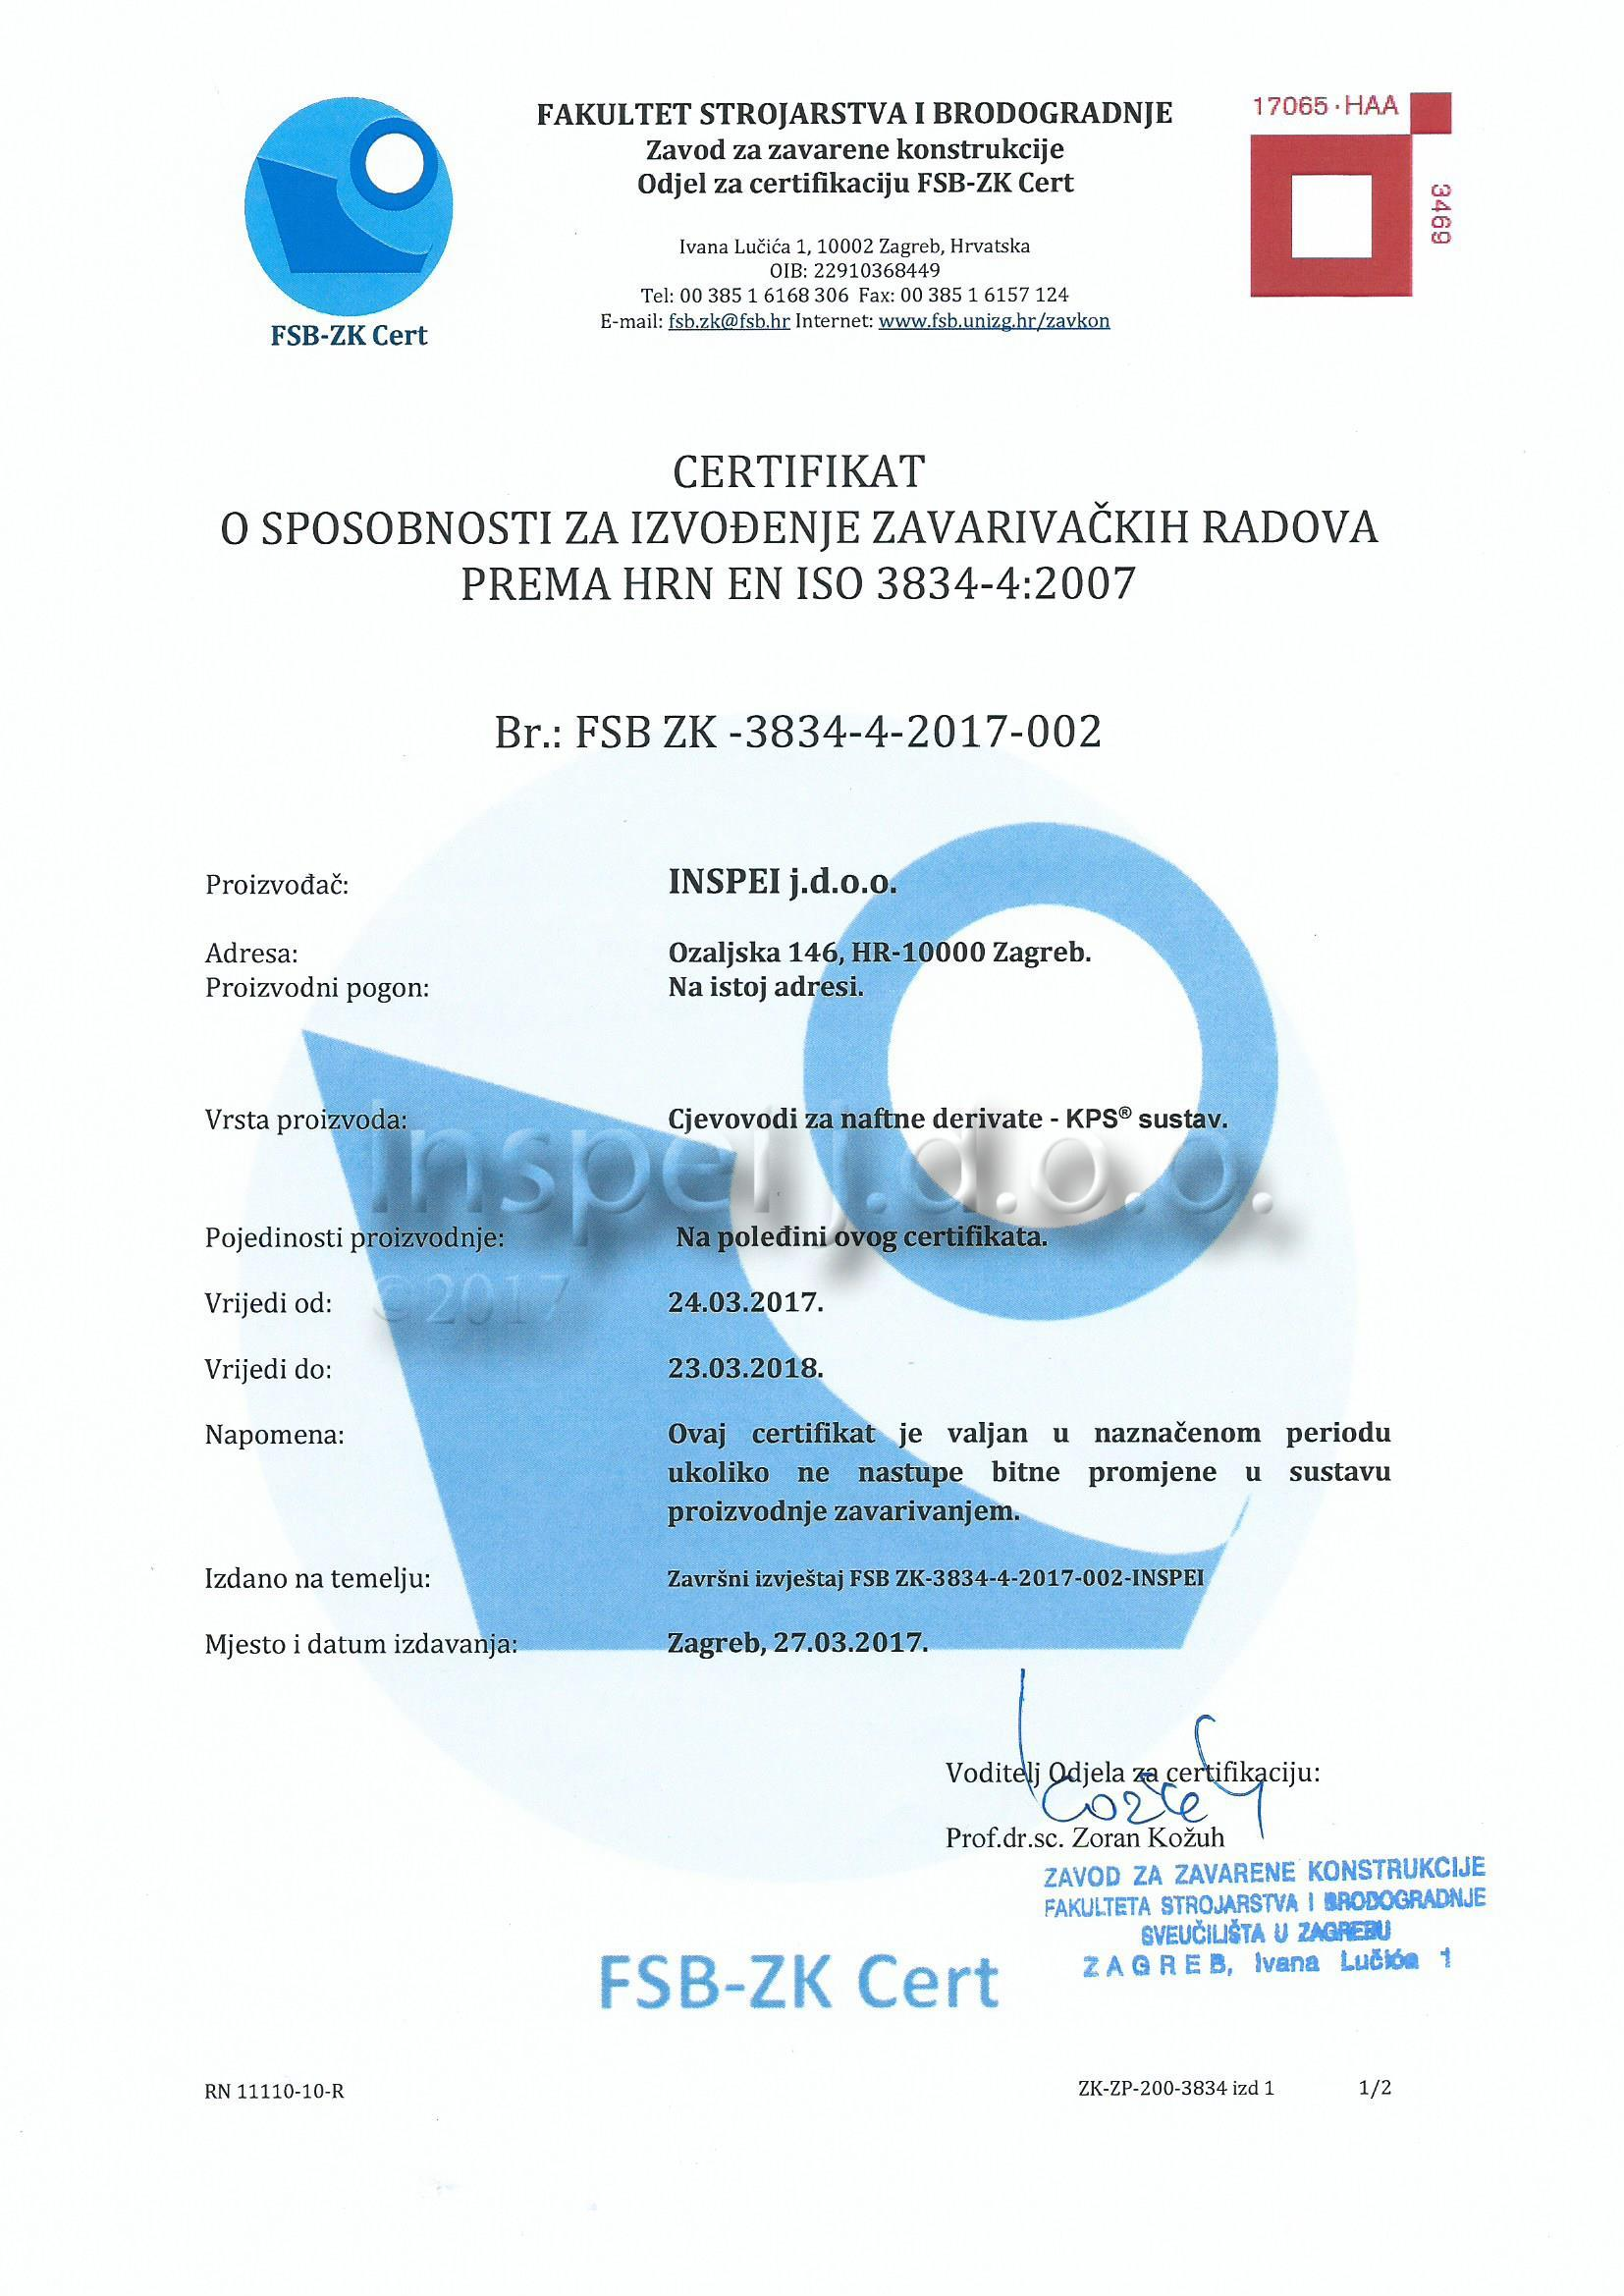 Certificates And Licences Inspei Jdoo